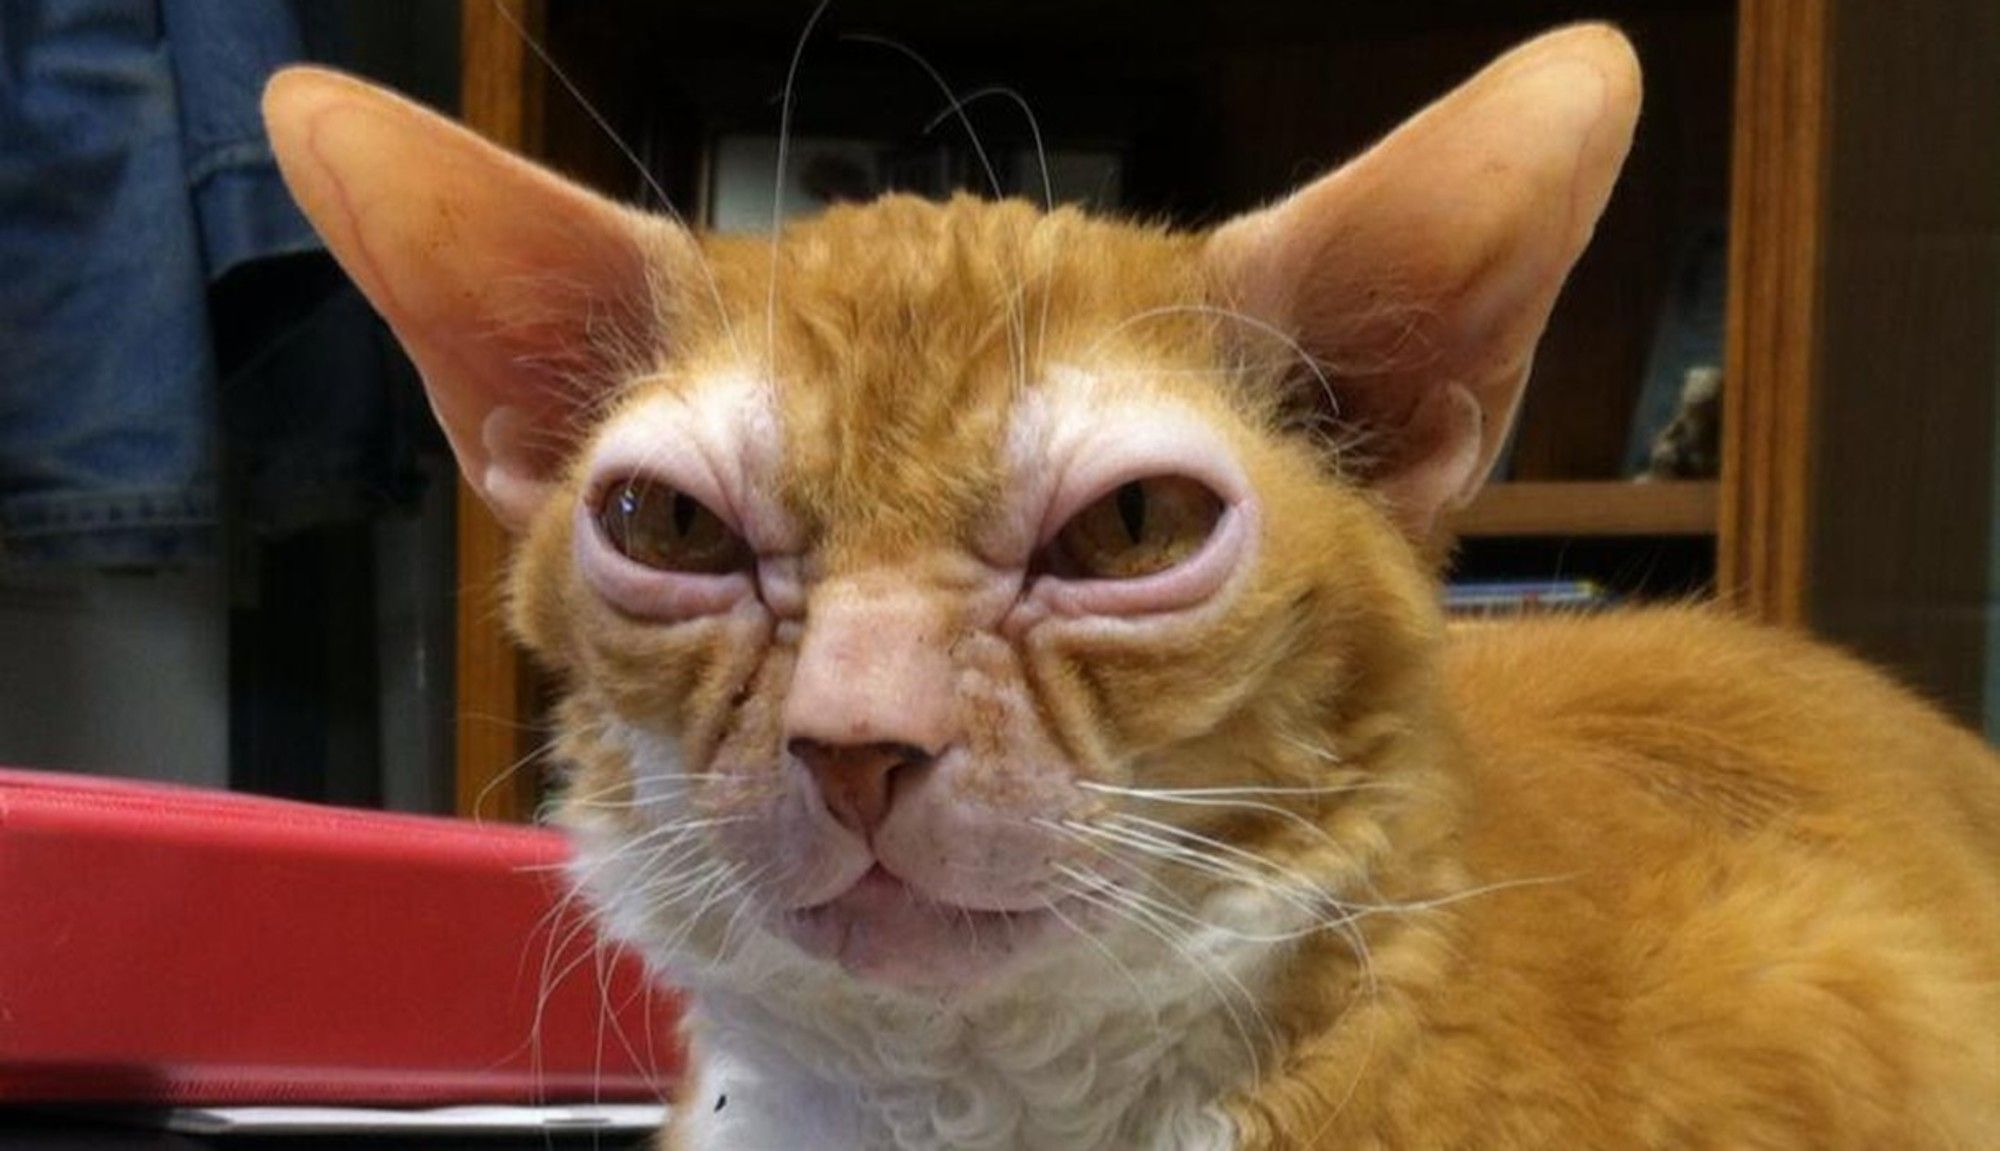 This Cat Weirdly Looks Like Yoda From 'Star Wars' Crazy